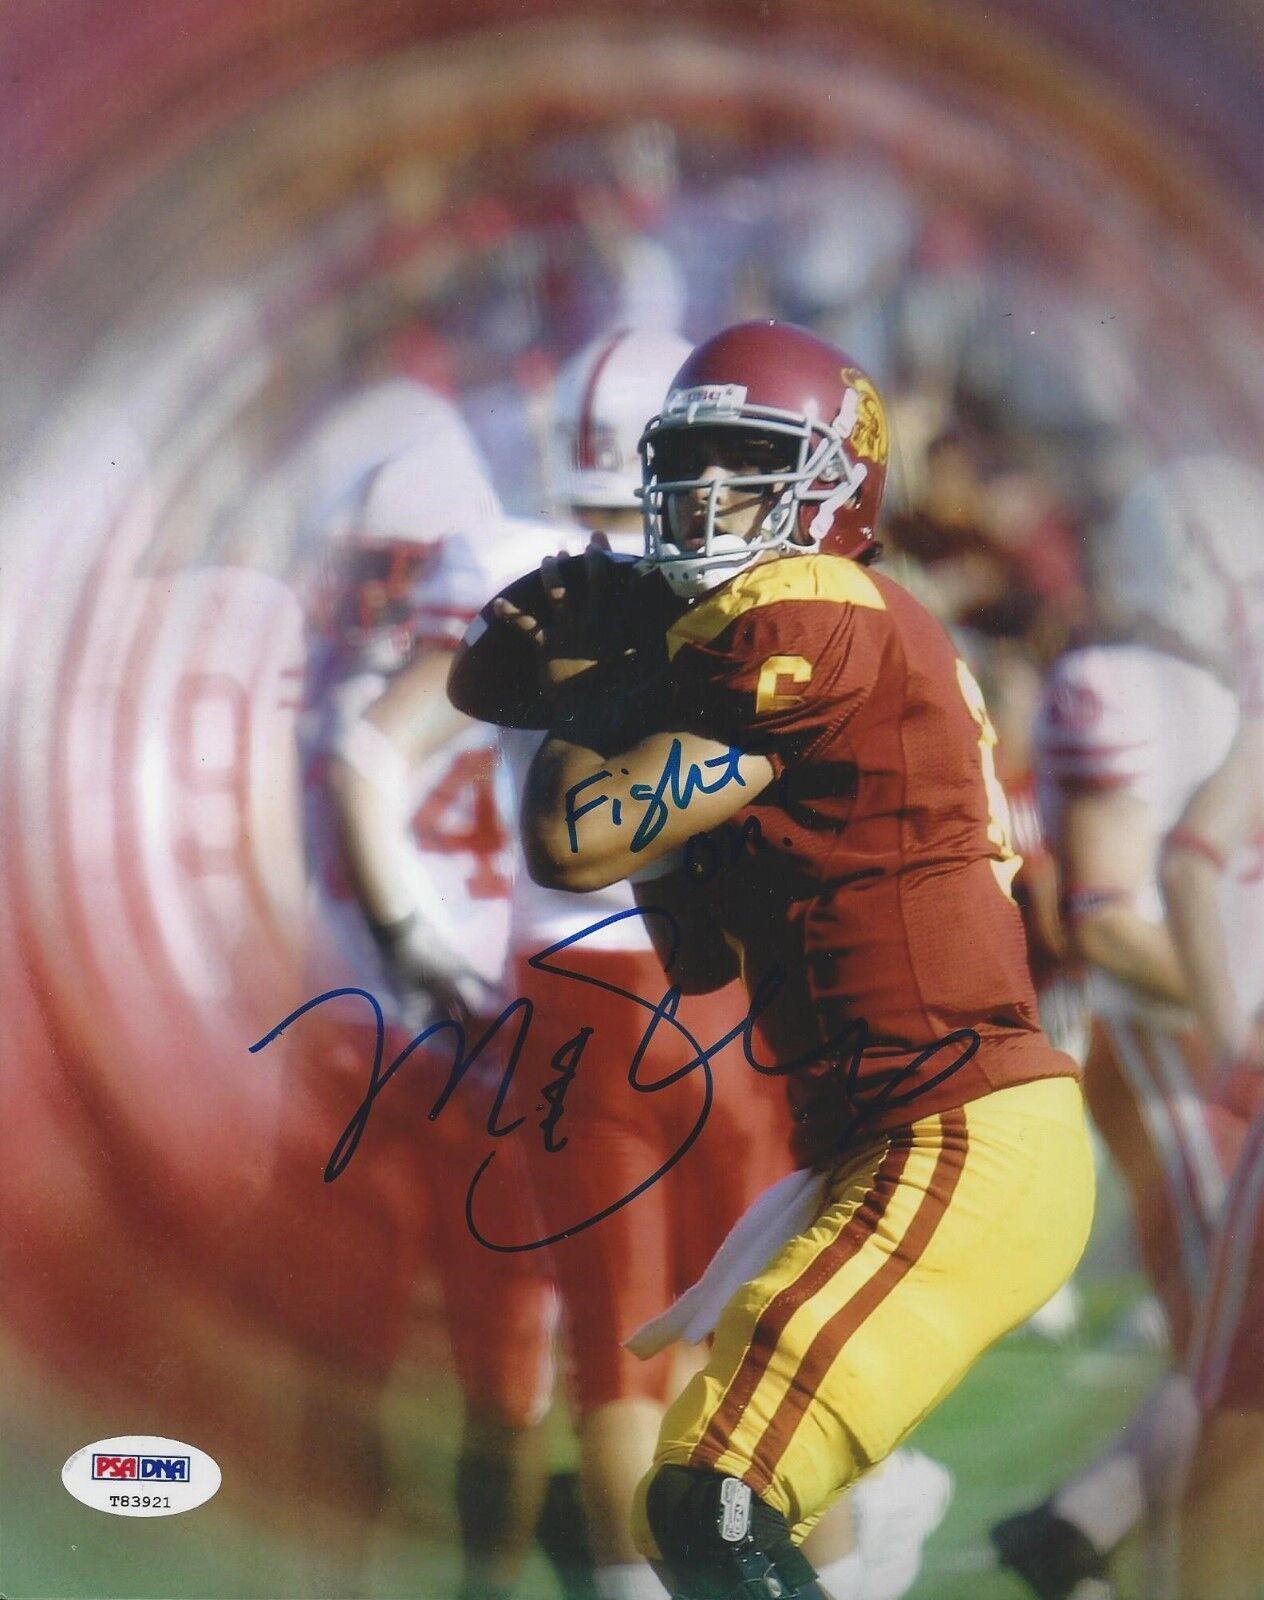 Mark Sanchez Of The USC Trojans Signed 8x10 Photo - PSA/DNA # T83921